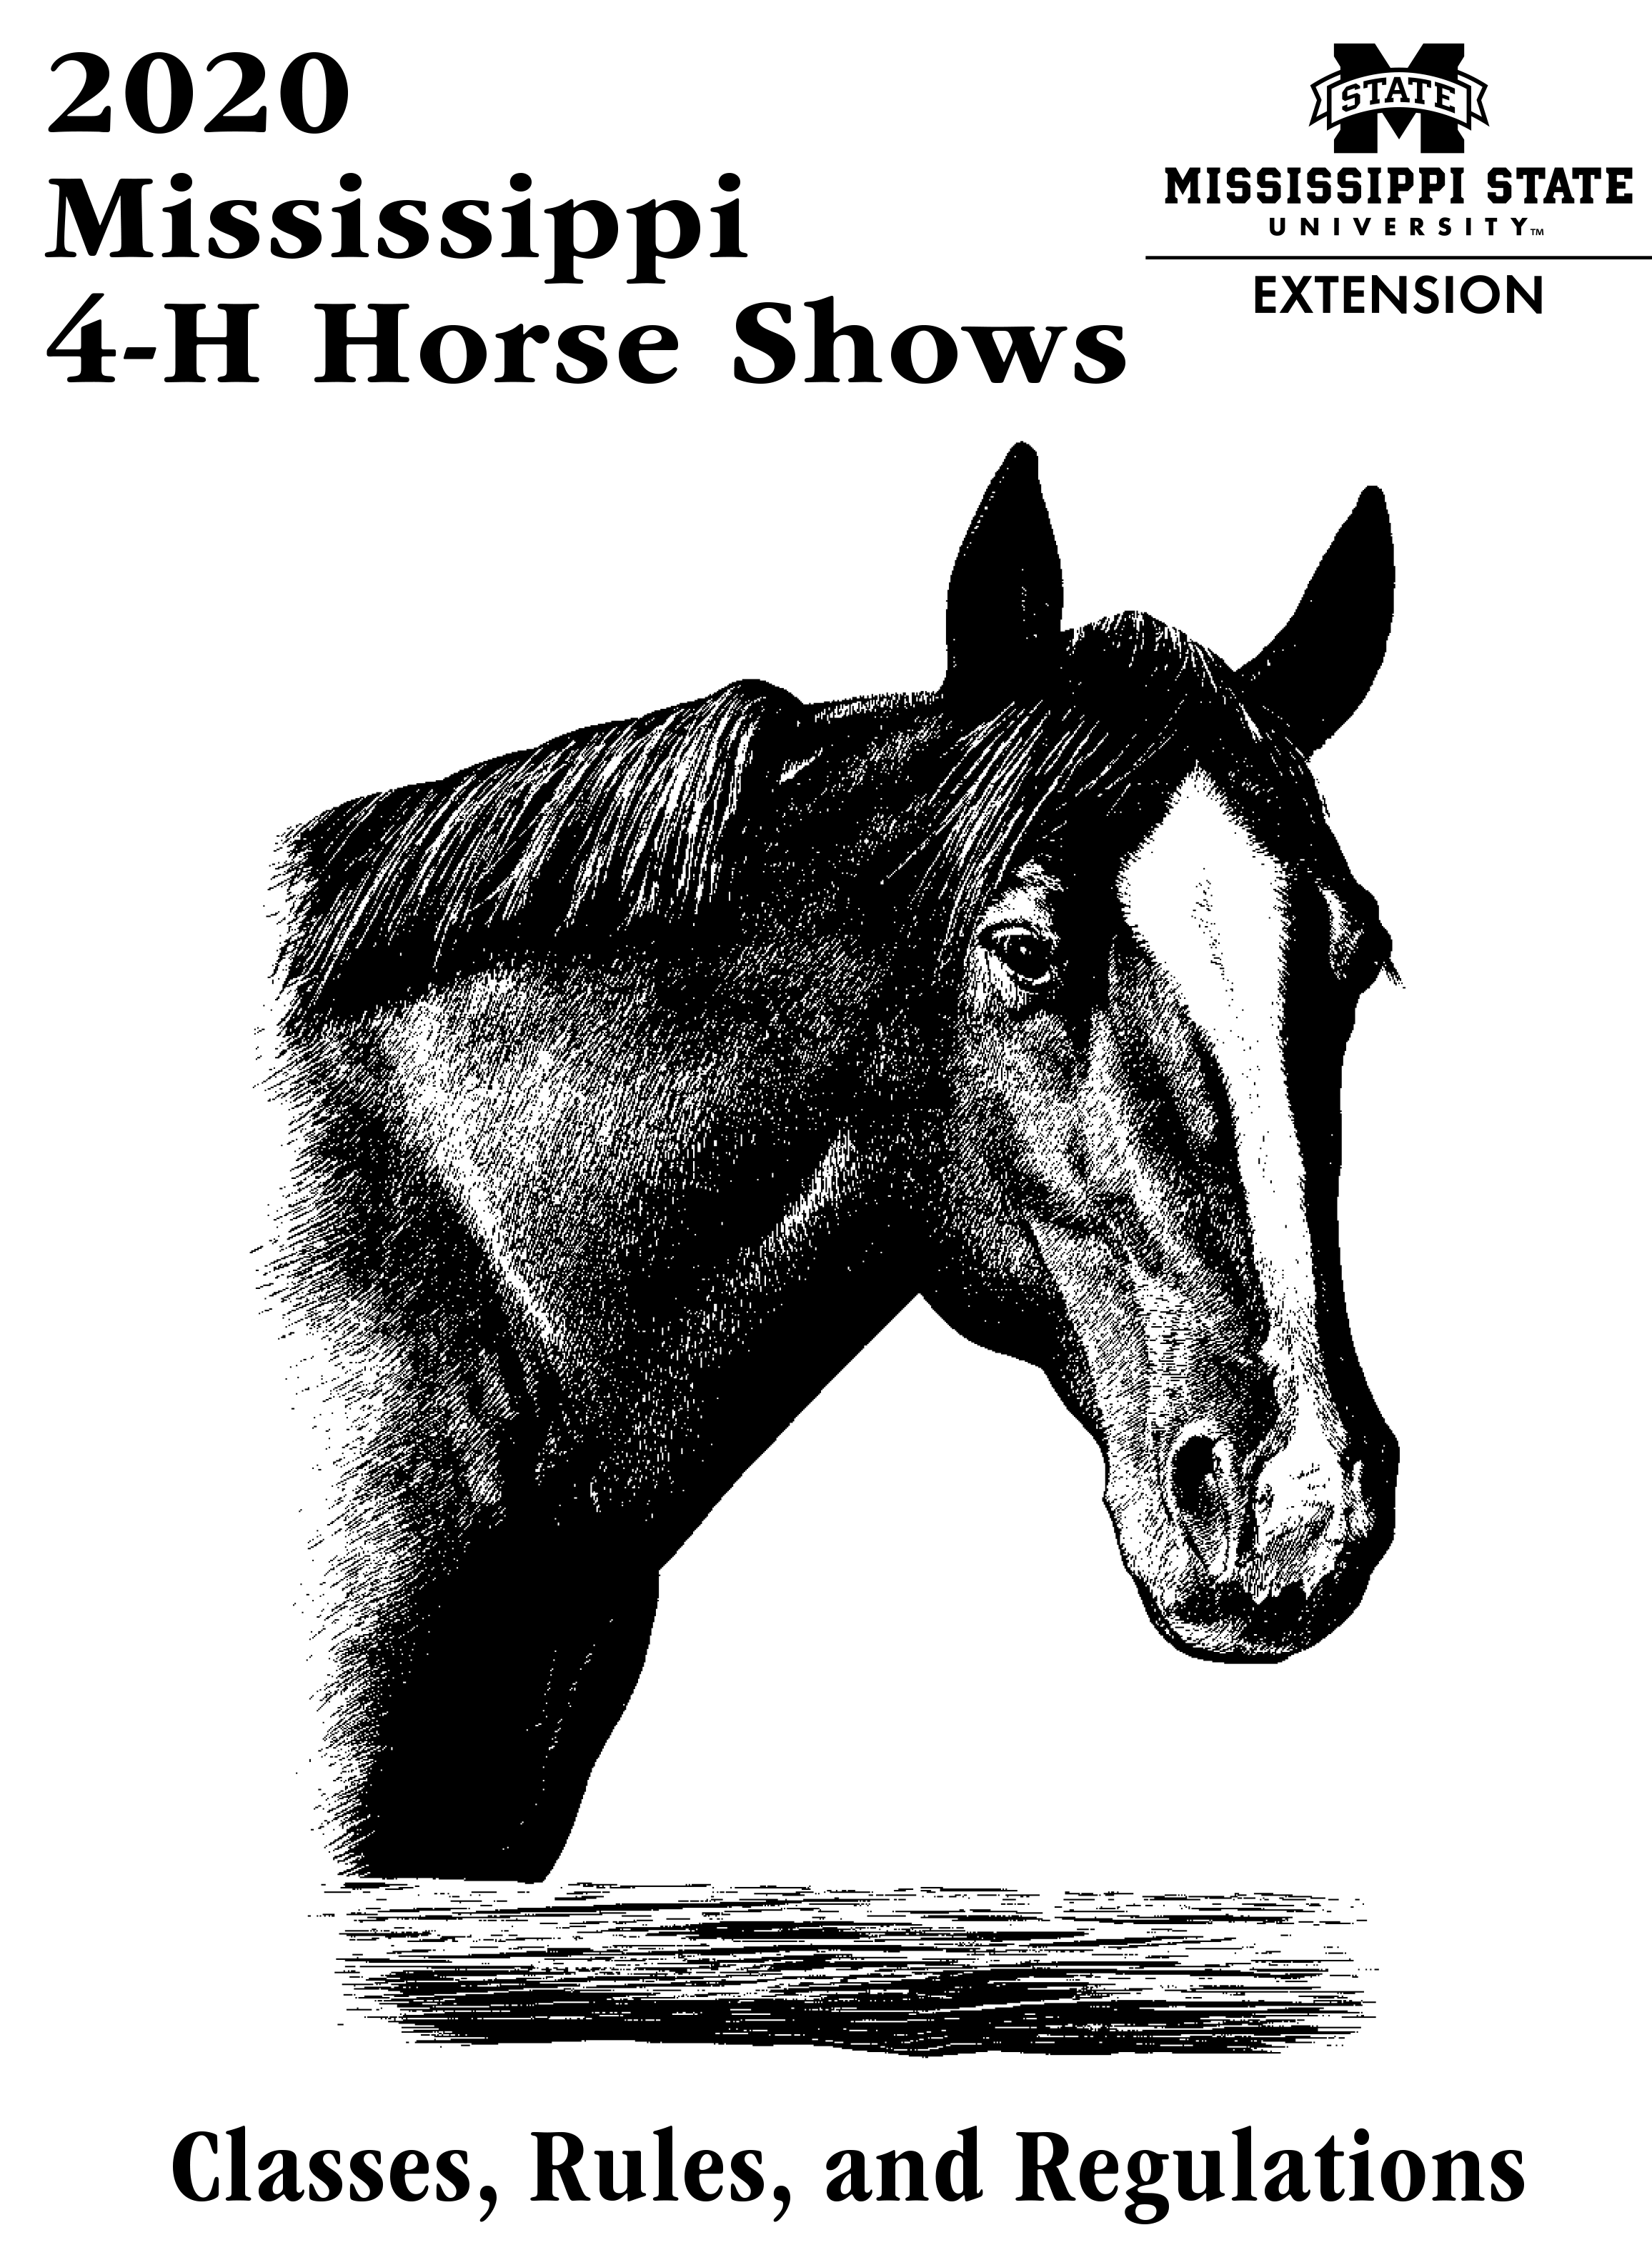 Cover of 2020 Mississippi 4-H Horse Shows: Classes, Rules, and Regulations book.